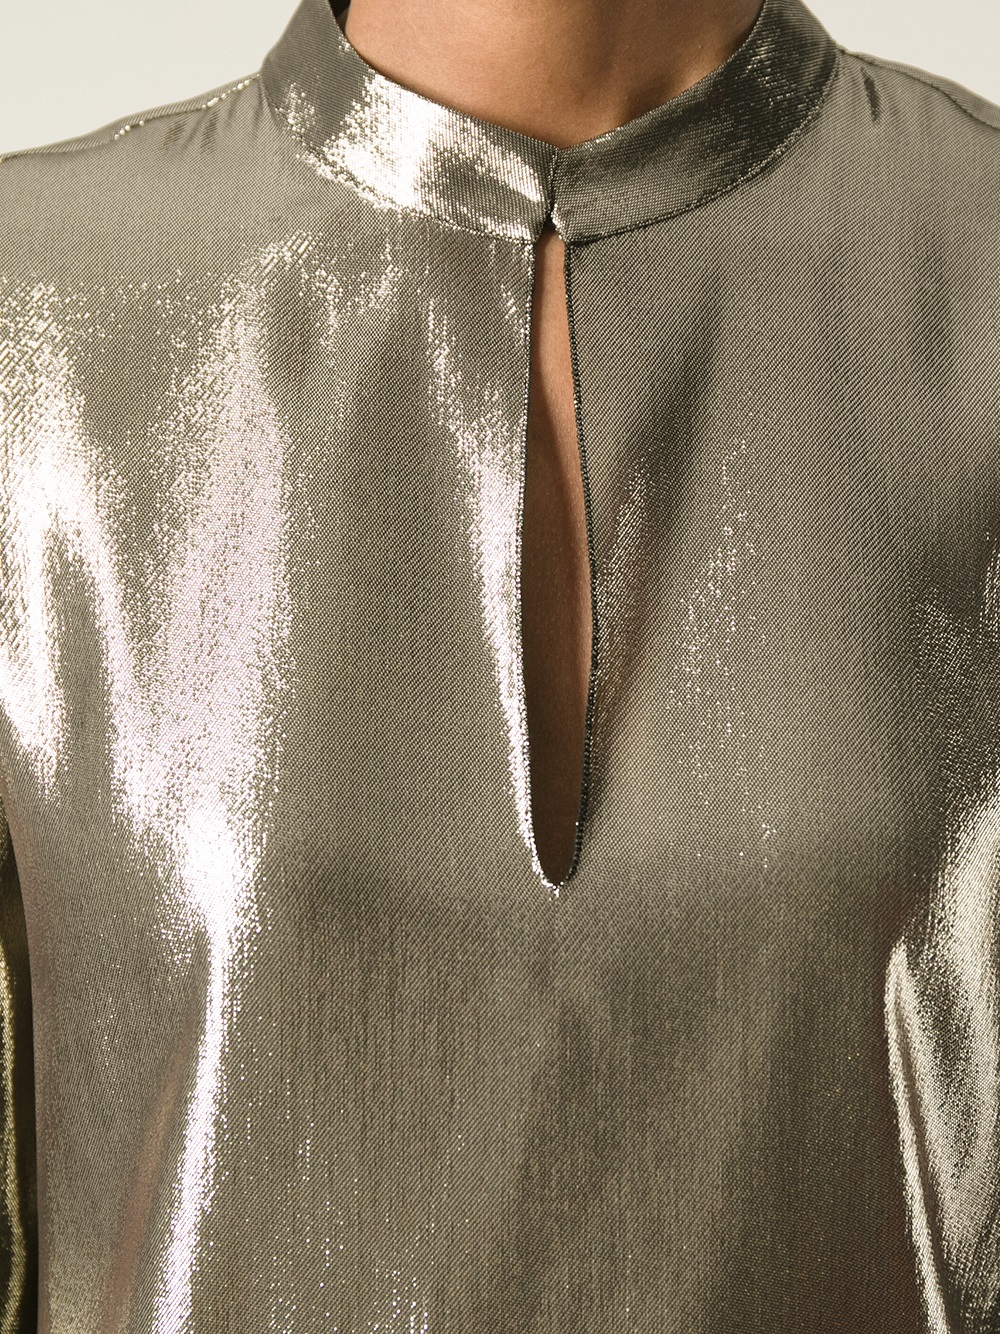 Gold Metallic Blouse Fashion Ql